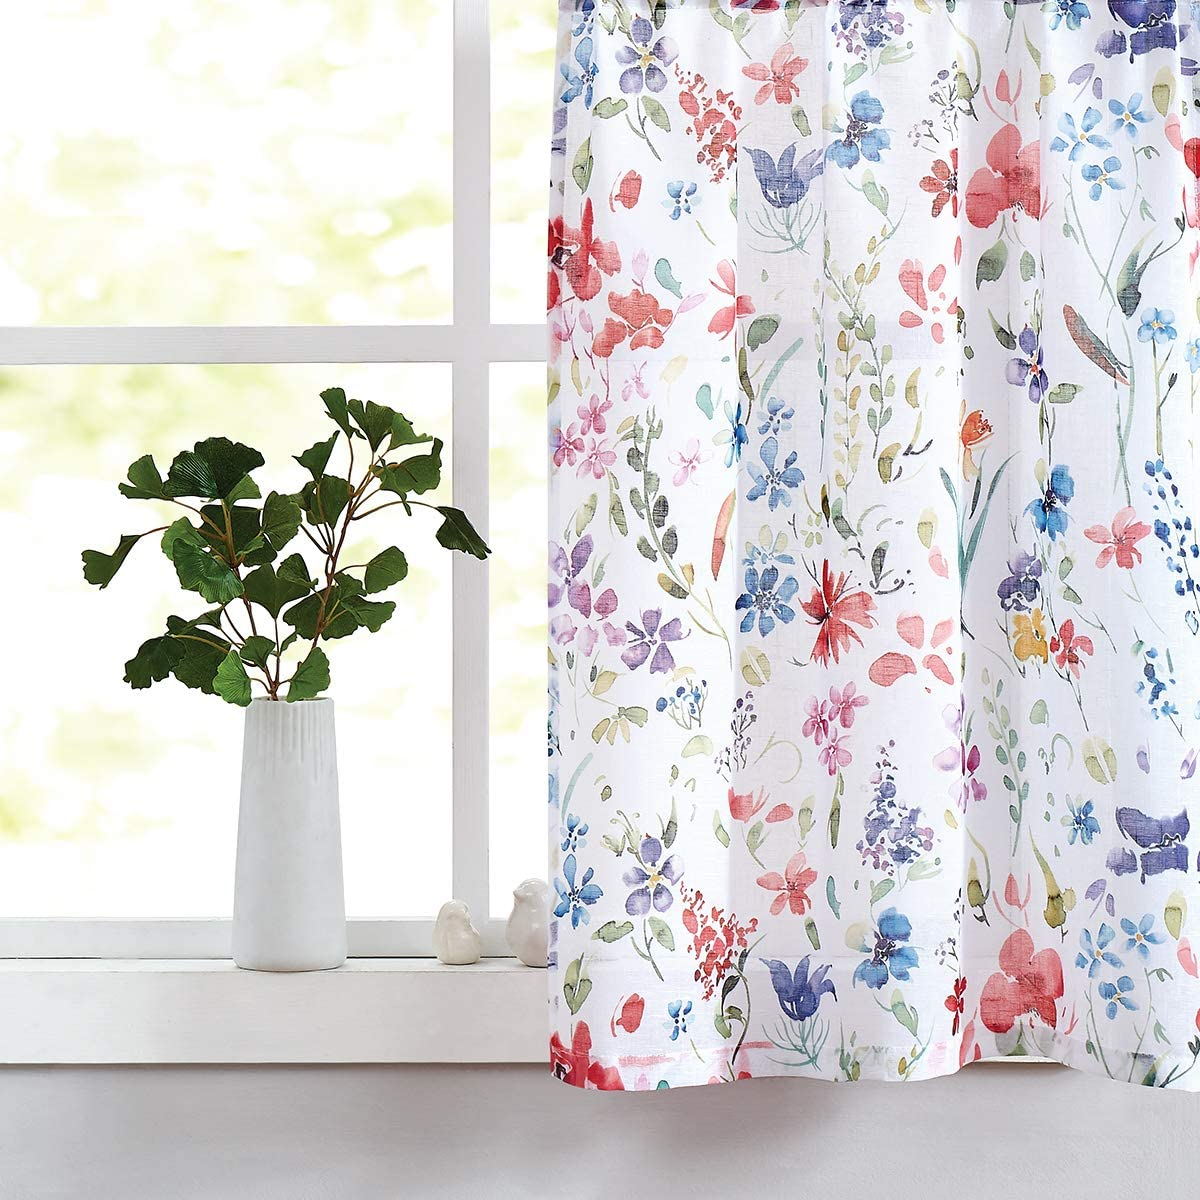 Fragrantex Printed Window Curtains 36 Sheer Caf Tier Curtains Linen Cotton Like Multi-Color Short Half Window Treatment Sets Curtain for Small Window, Bathroom 28 W x 36 L 2 Panels, Rod Pocket